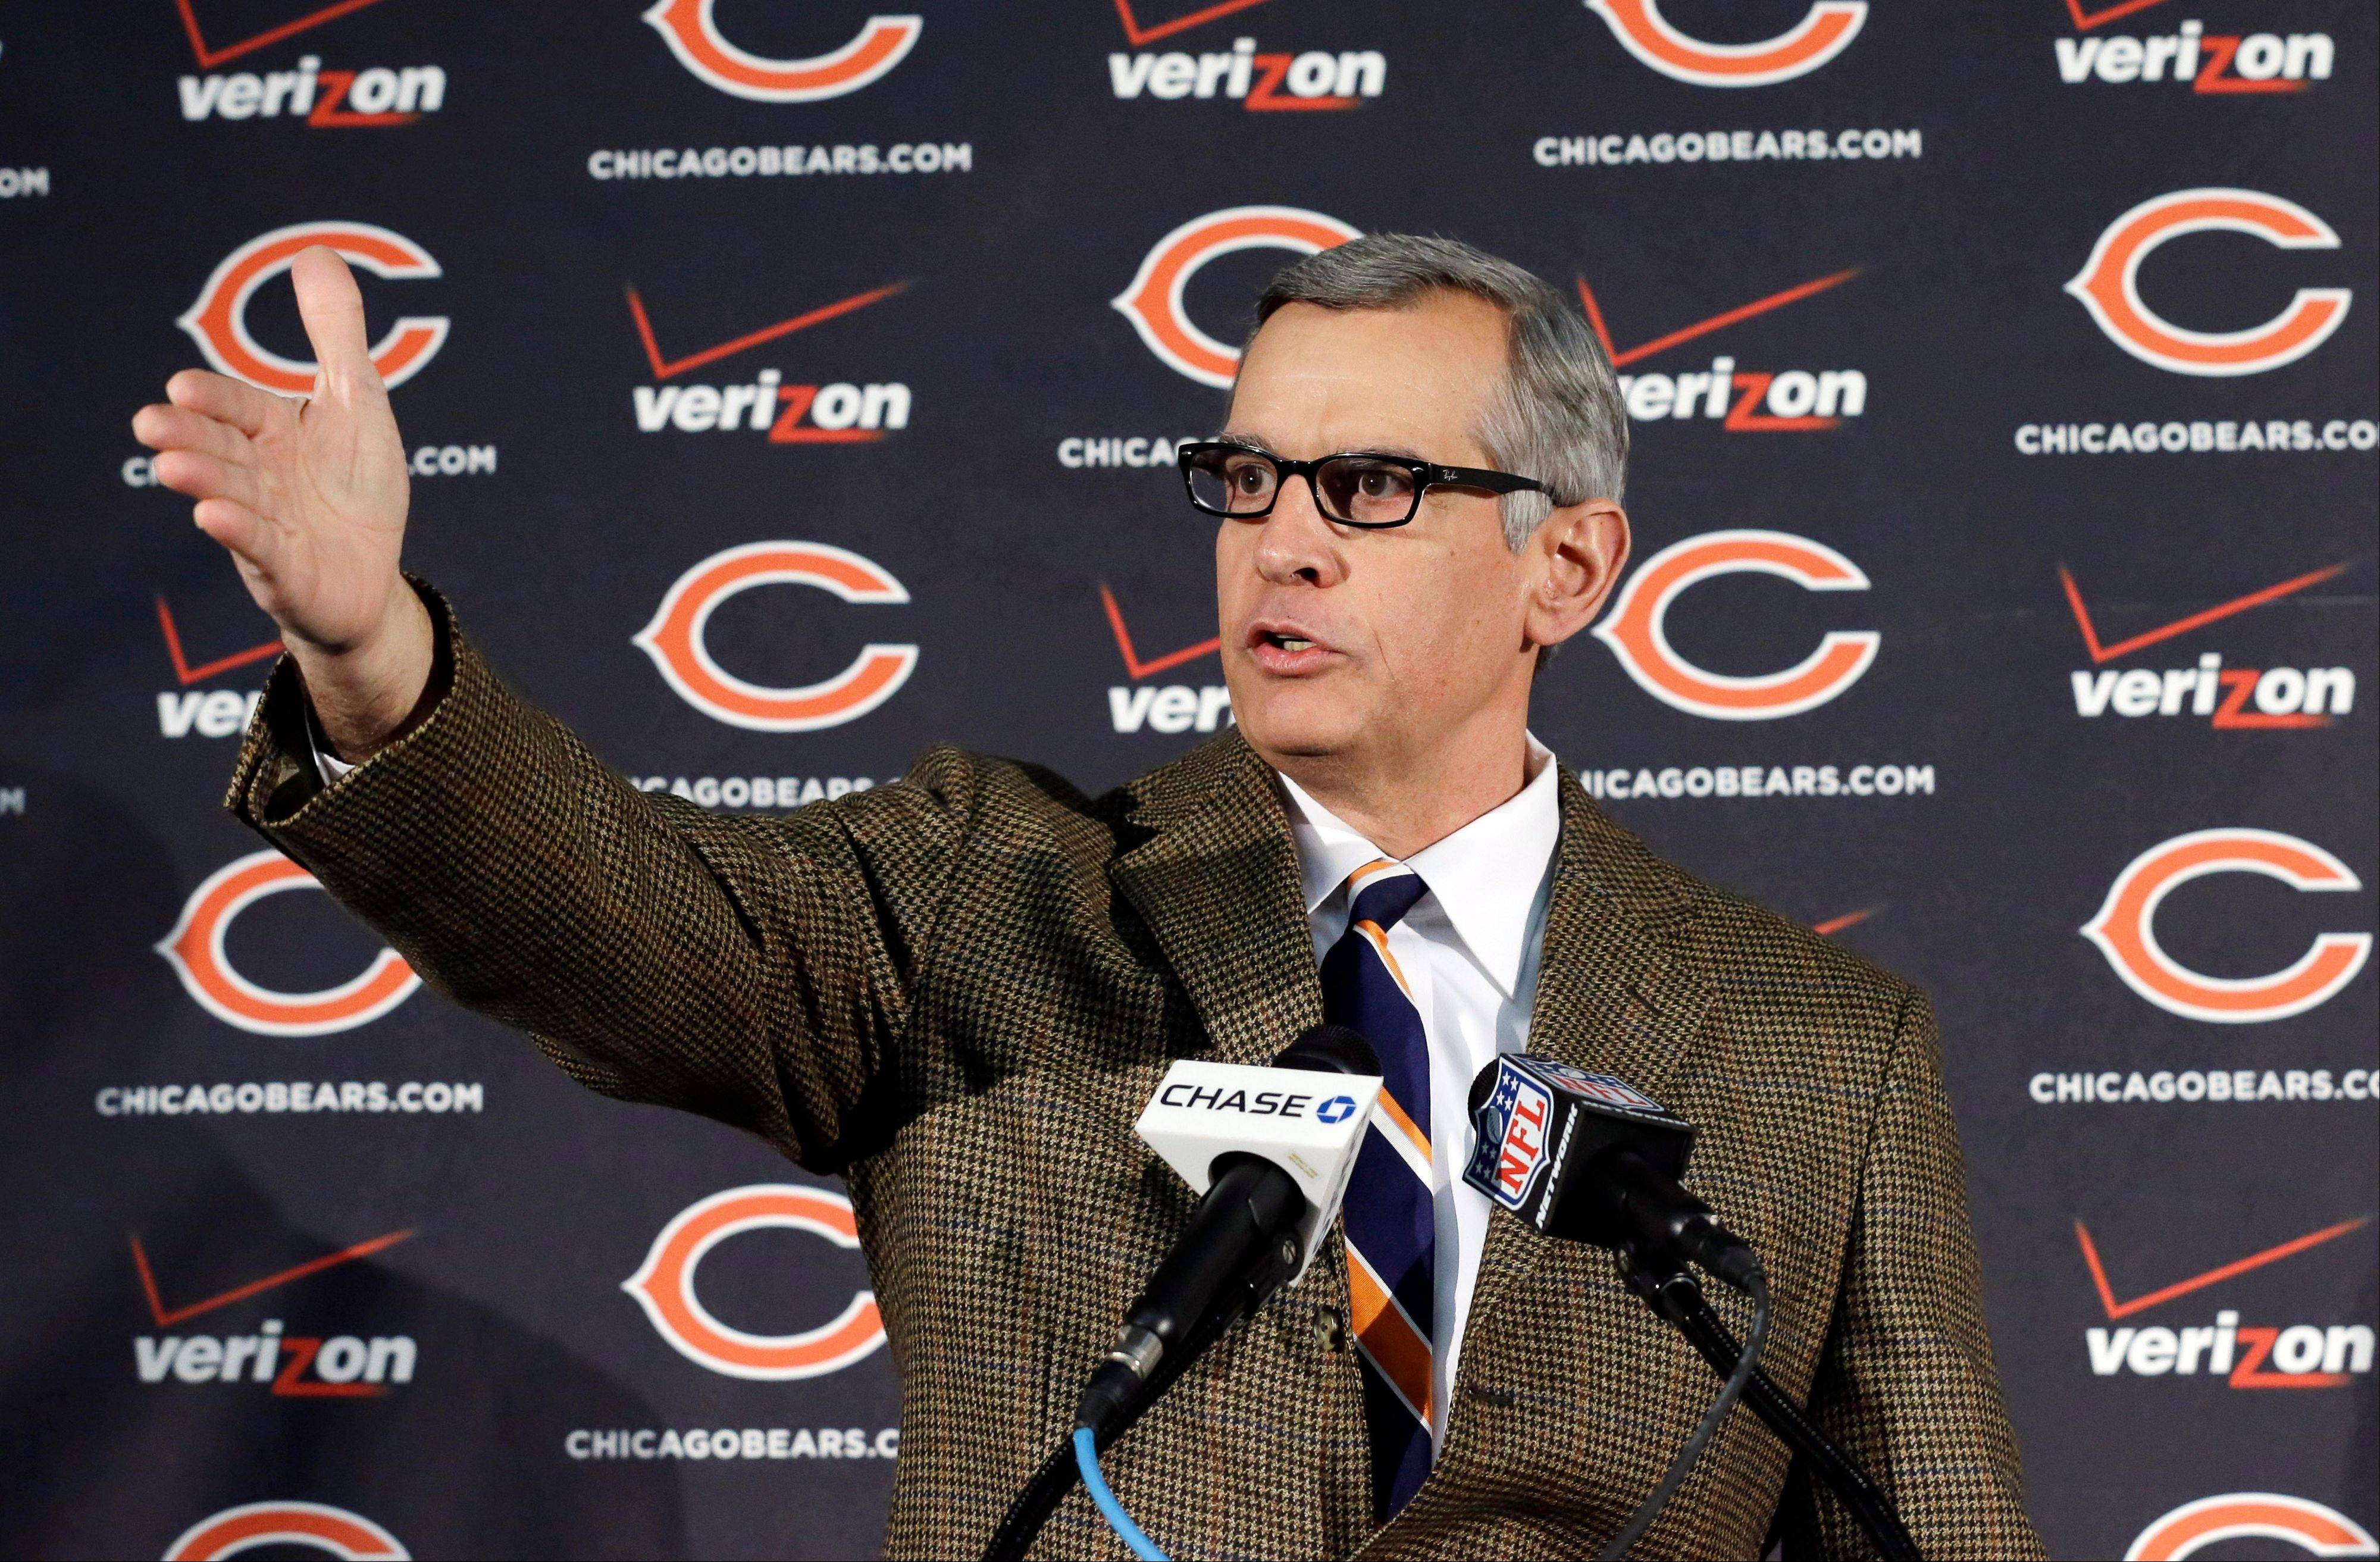 For Bears GM, playoffs were factor in firing